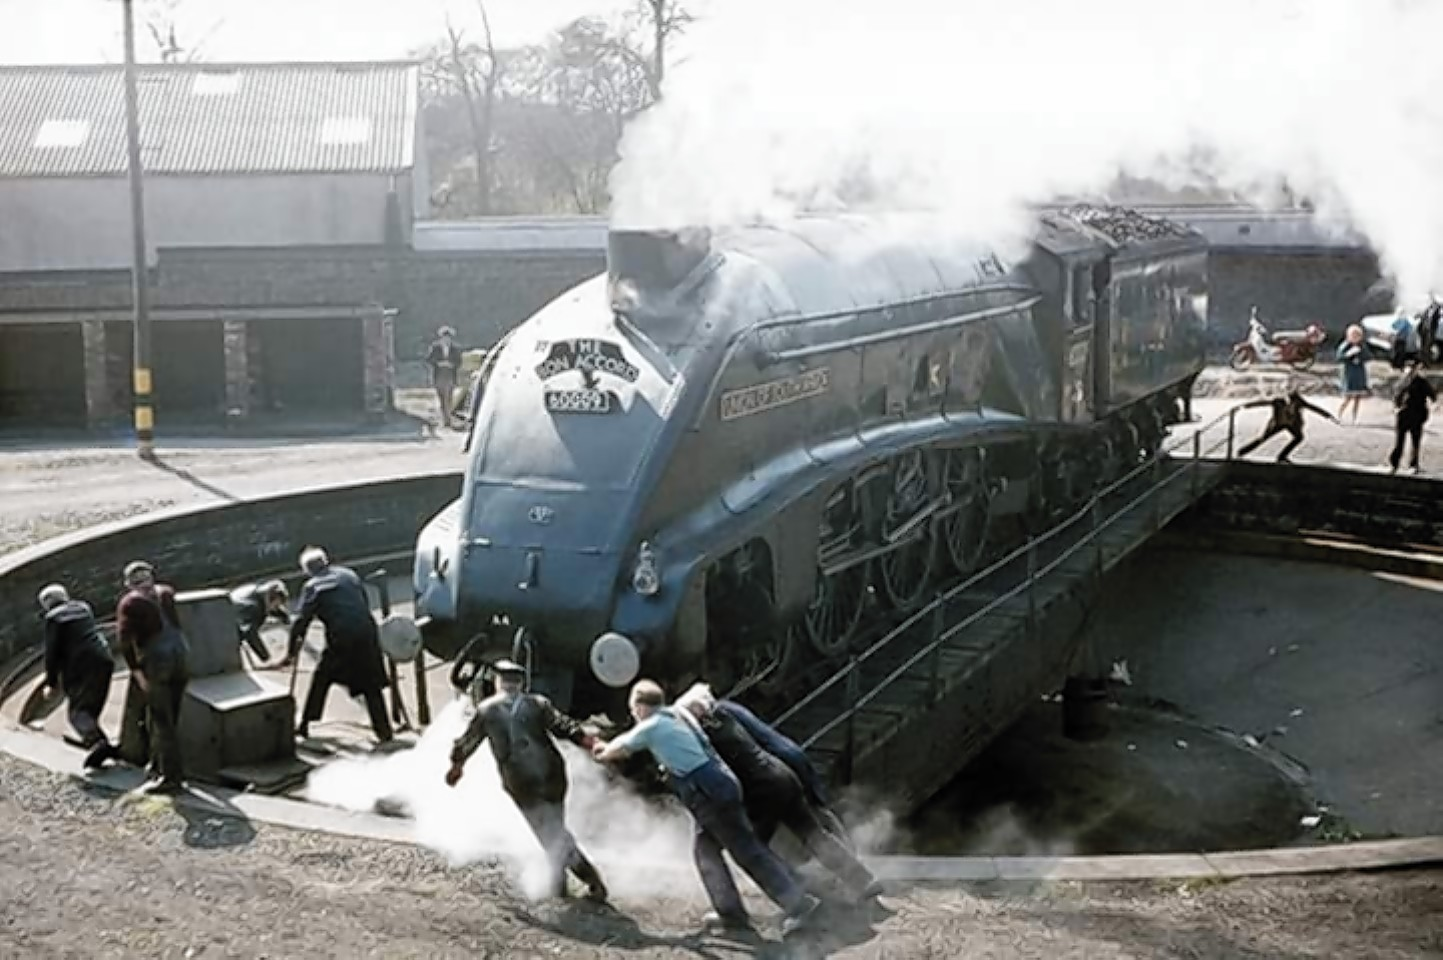 Classic steam train Union of South Africa returns to Aberdeen for first time since 1966 at Ferryhill Railway Turntable.